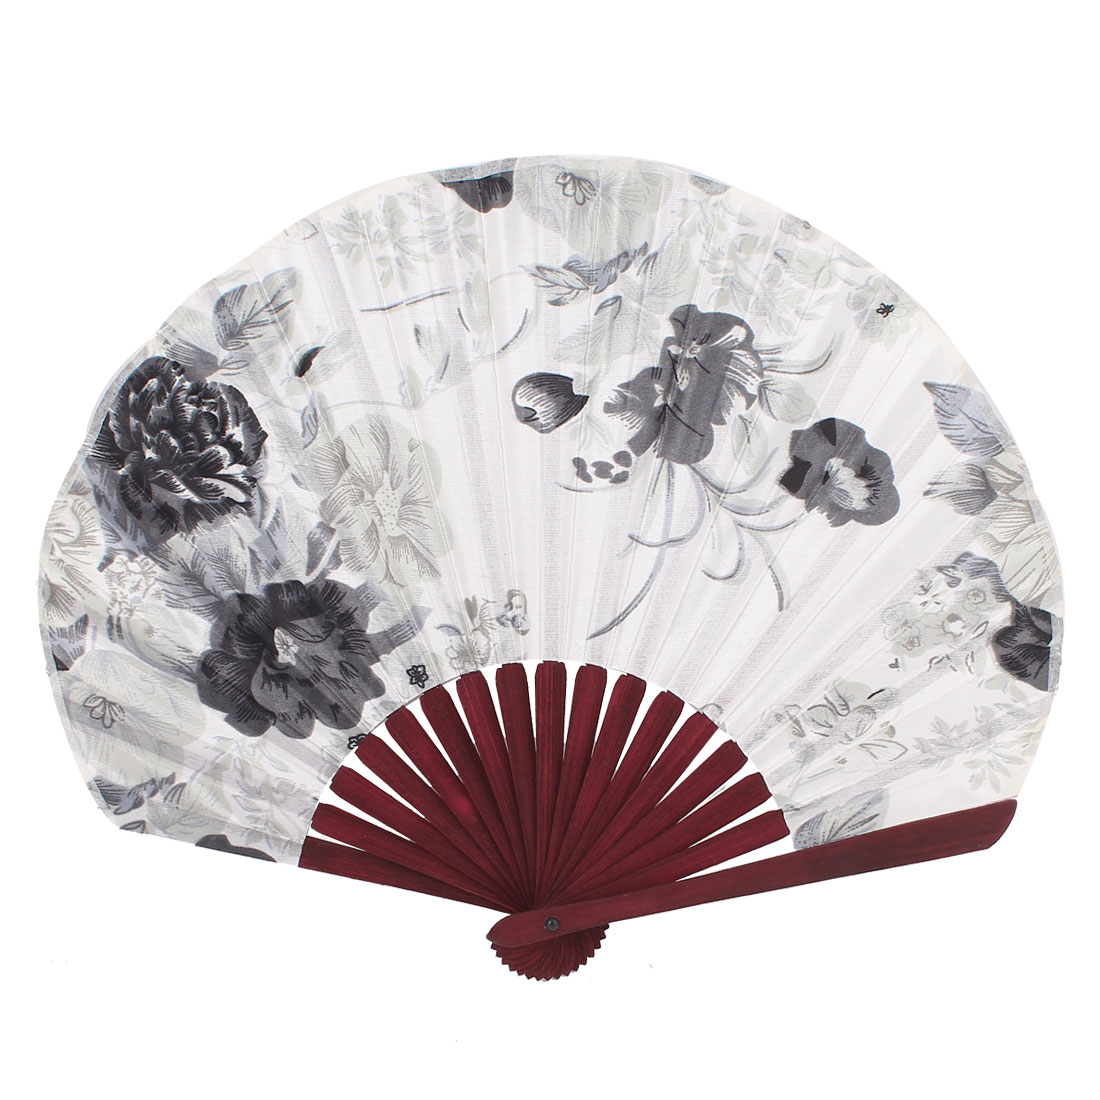 Seashell Shape Flower Print Chinese Style Wedding Party Folding Hand Fan White